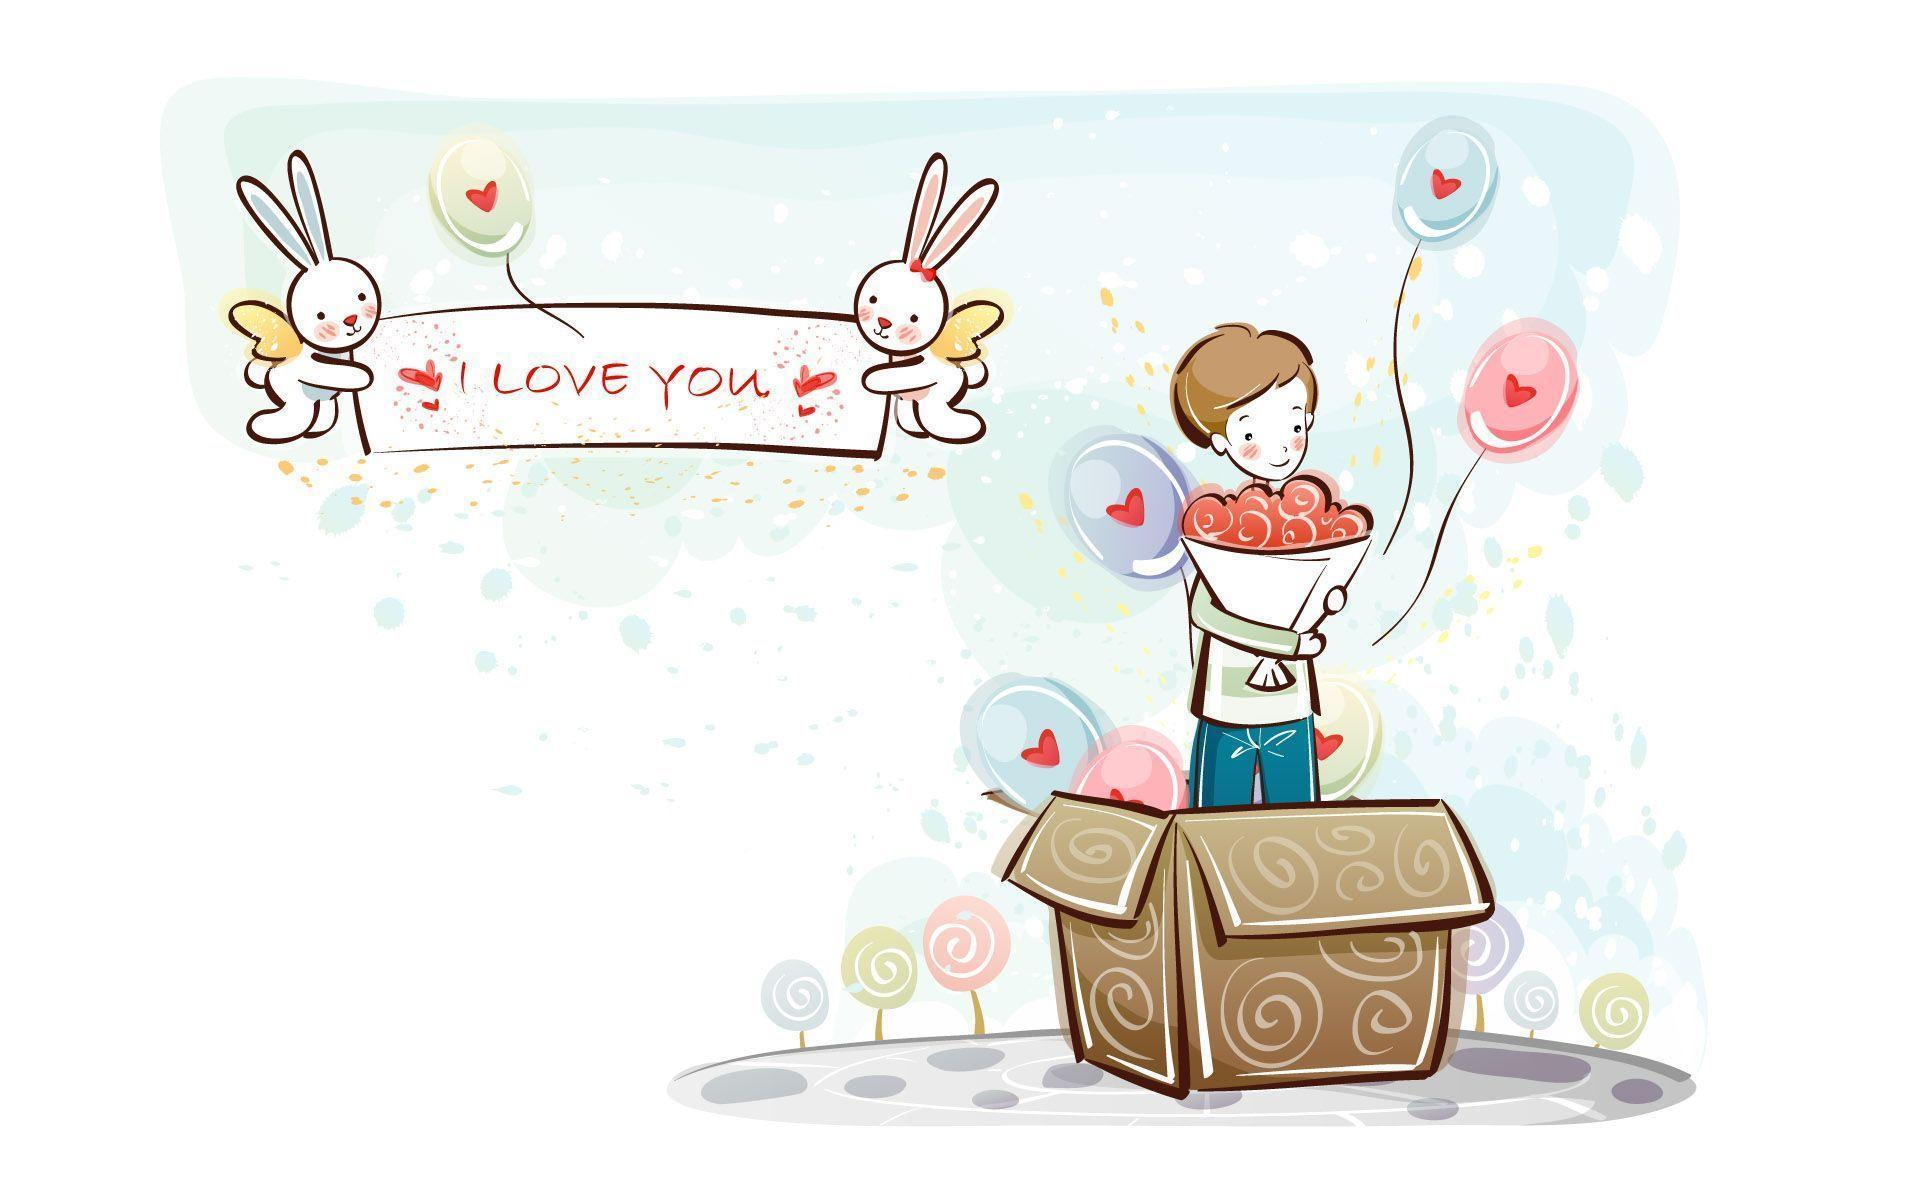 cartoon Wallpaper Of Love couple : Image Gallery love couple cartoon wallpaper